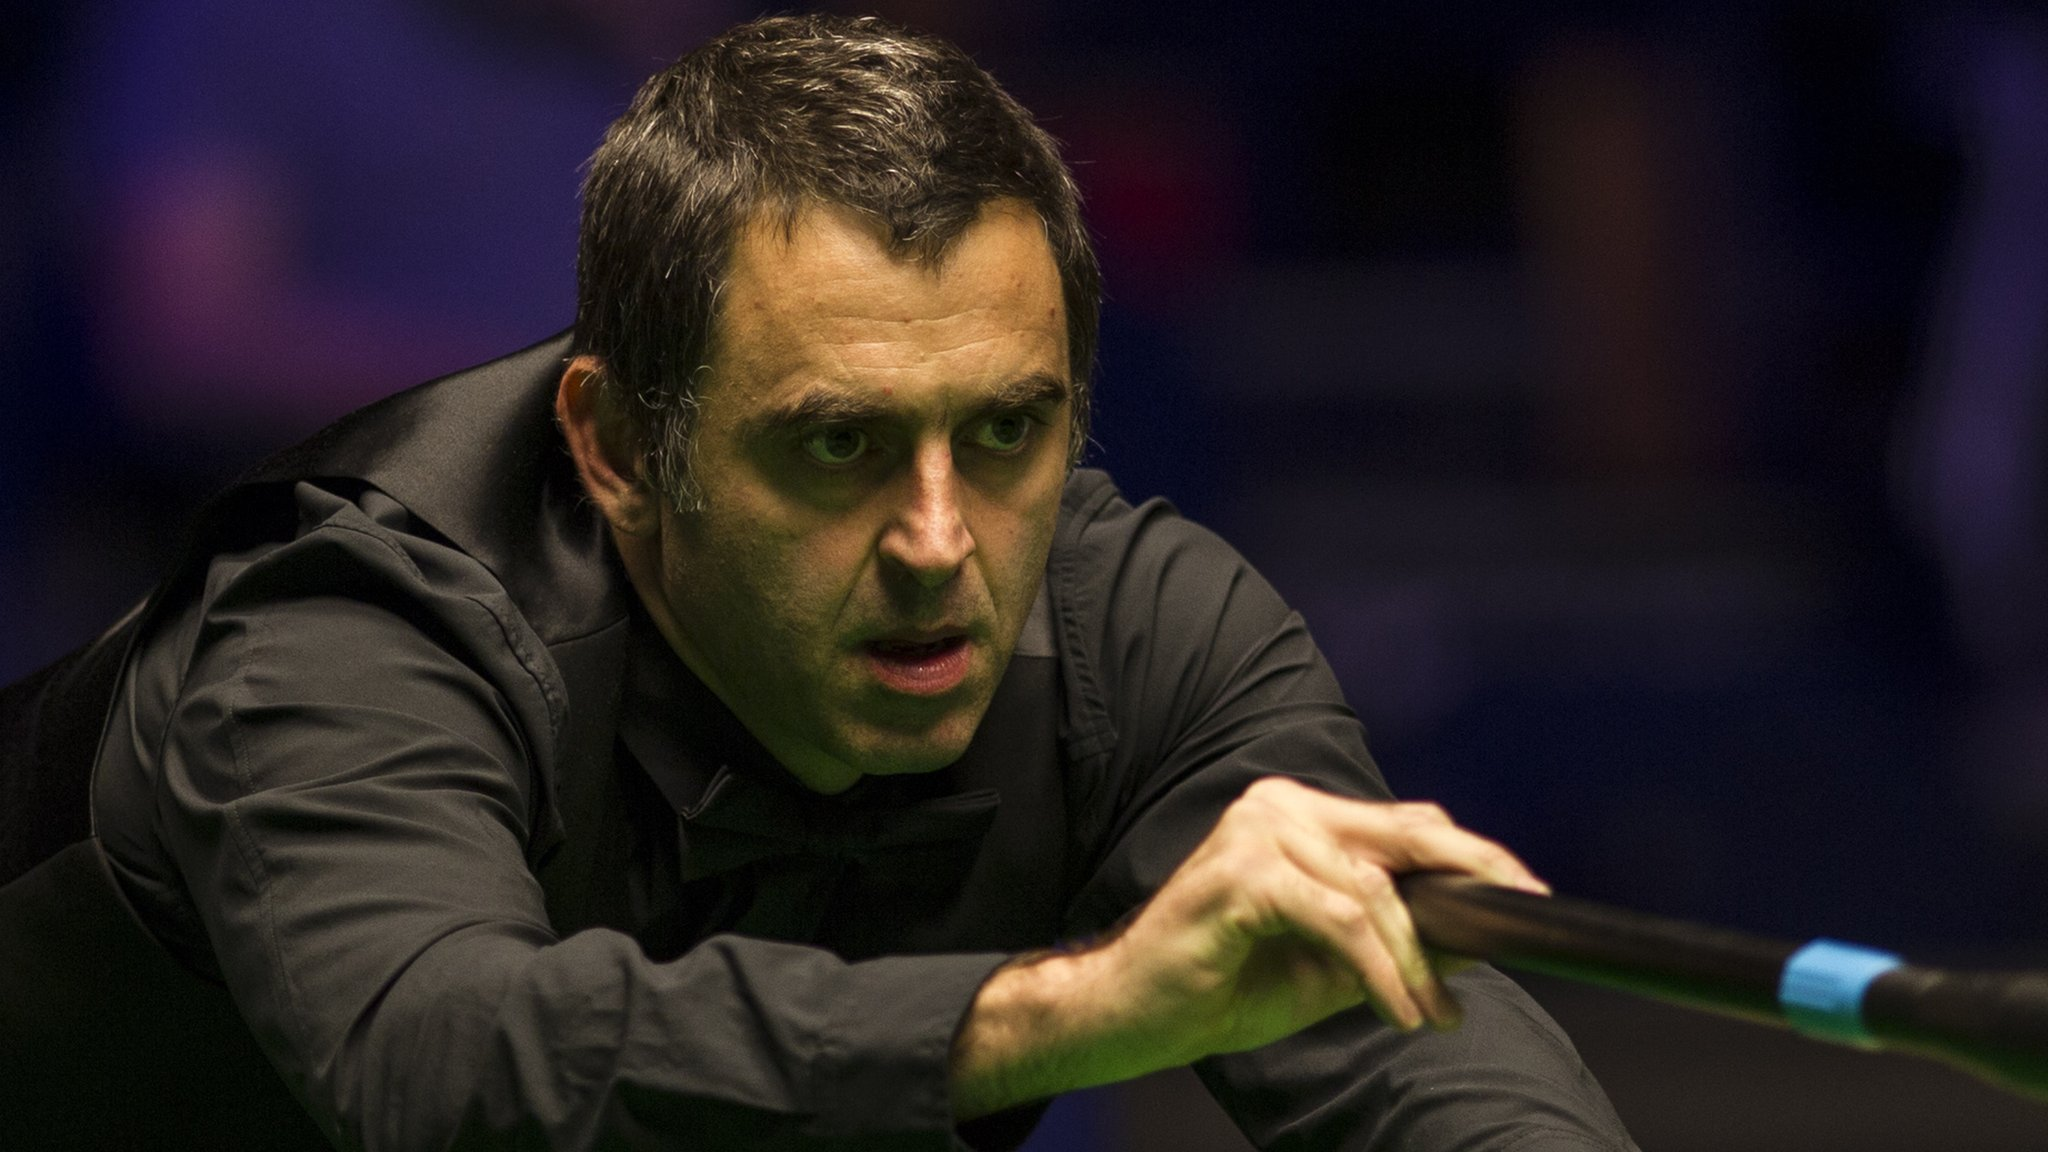 Selby joins O'Sullivan in NI Open quarters